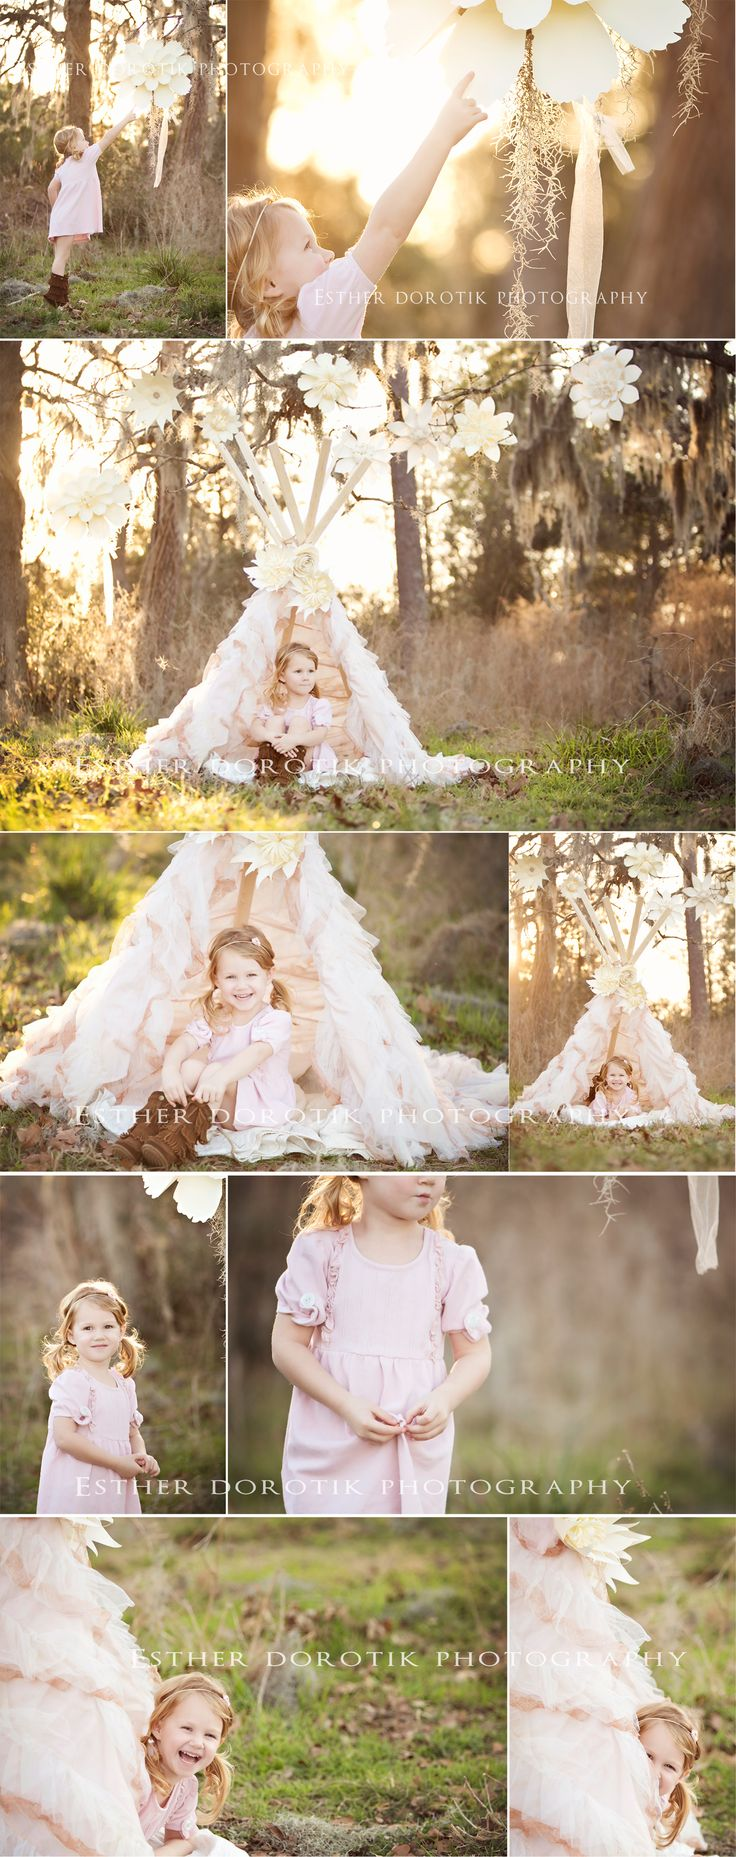 whimsical child photography, child, unique, teepee, outdoor girl photography